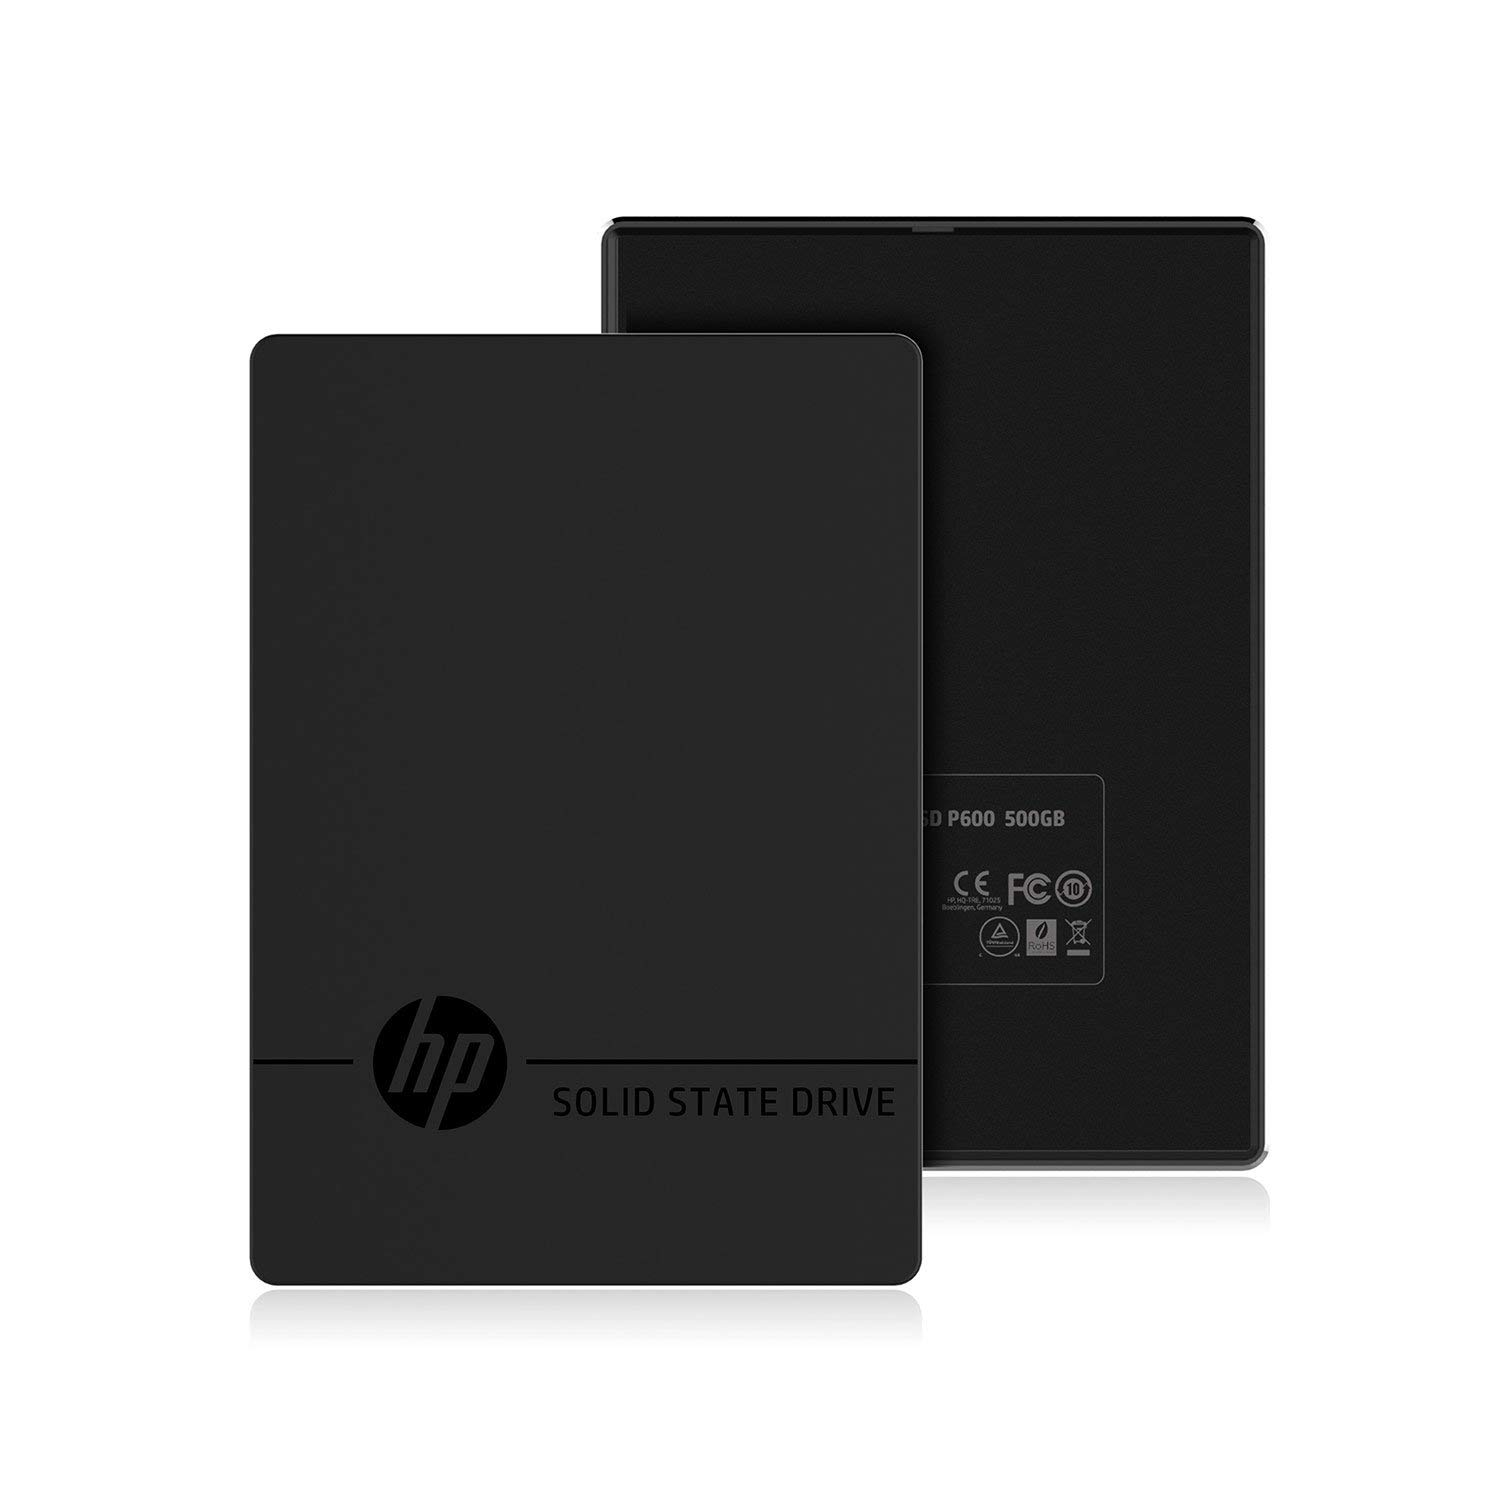 HP P600 500GB Portable USB 3.1 External SSD 3XJ07AA#ABC